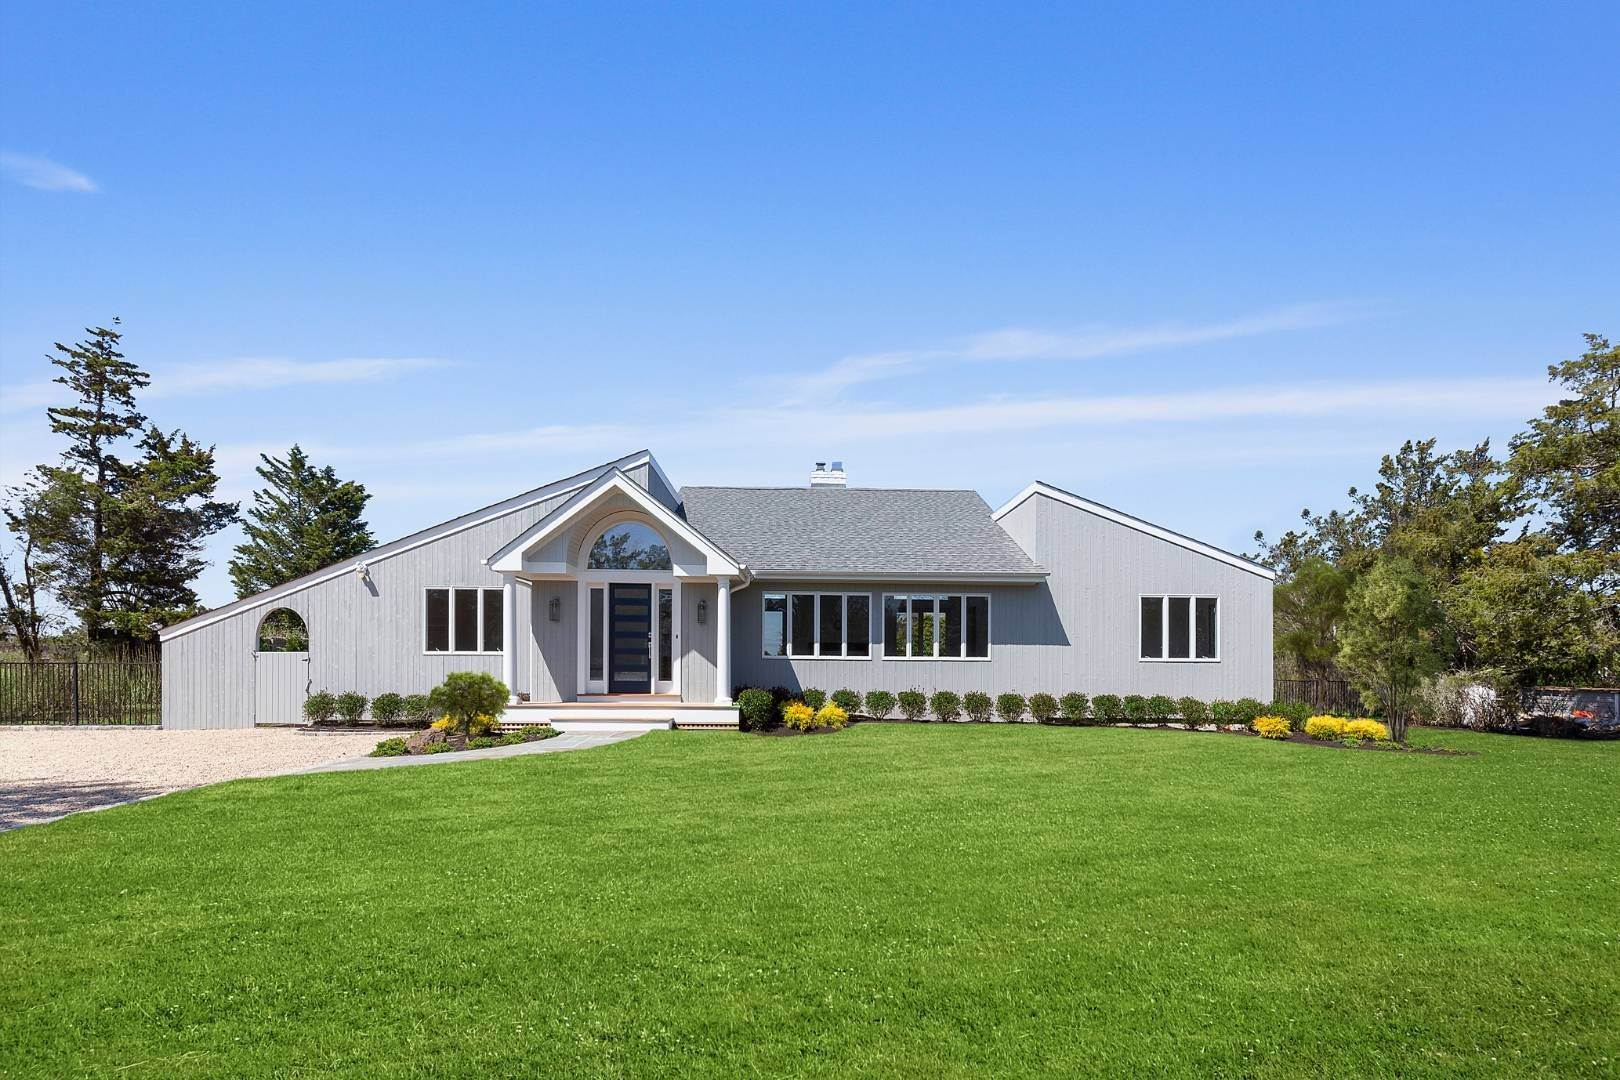 Single Family Home for Sale at Fully Renovated - New To Market - Location, Location, Location! 25 Meadow Lane, Westhampton Beach Village, NY 11978